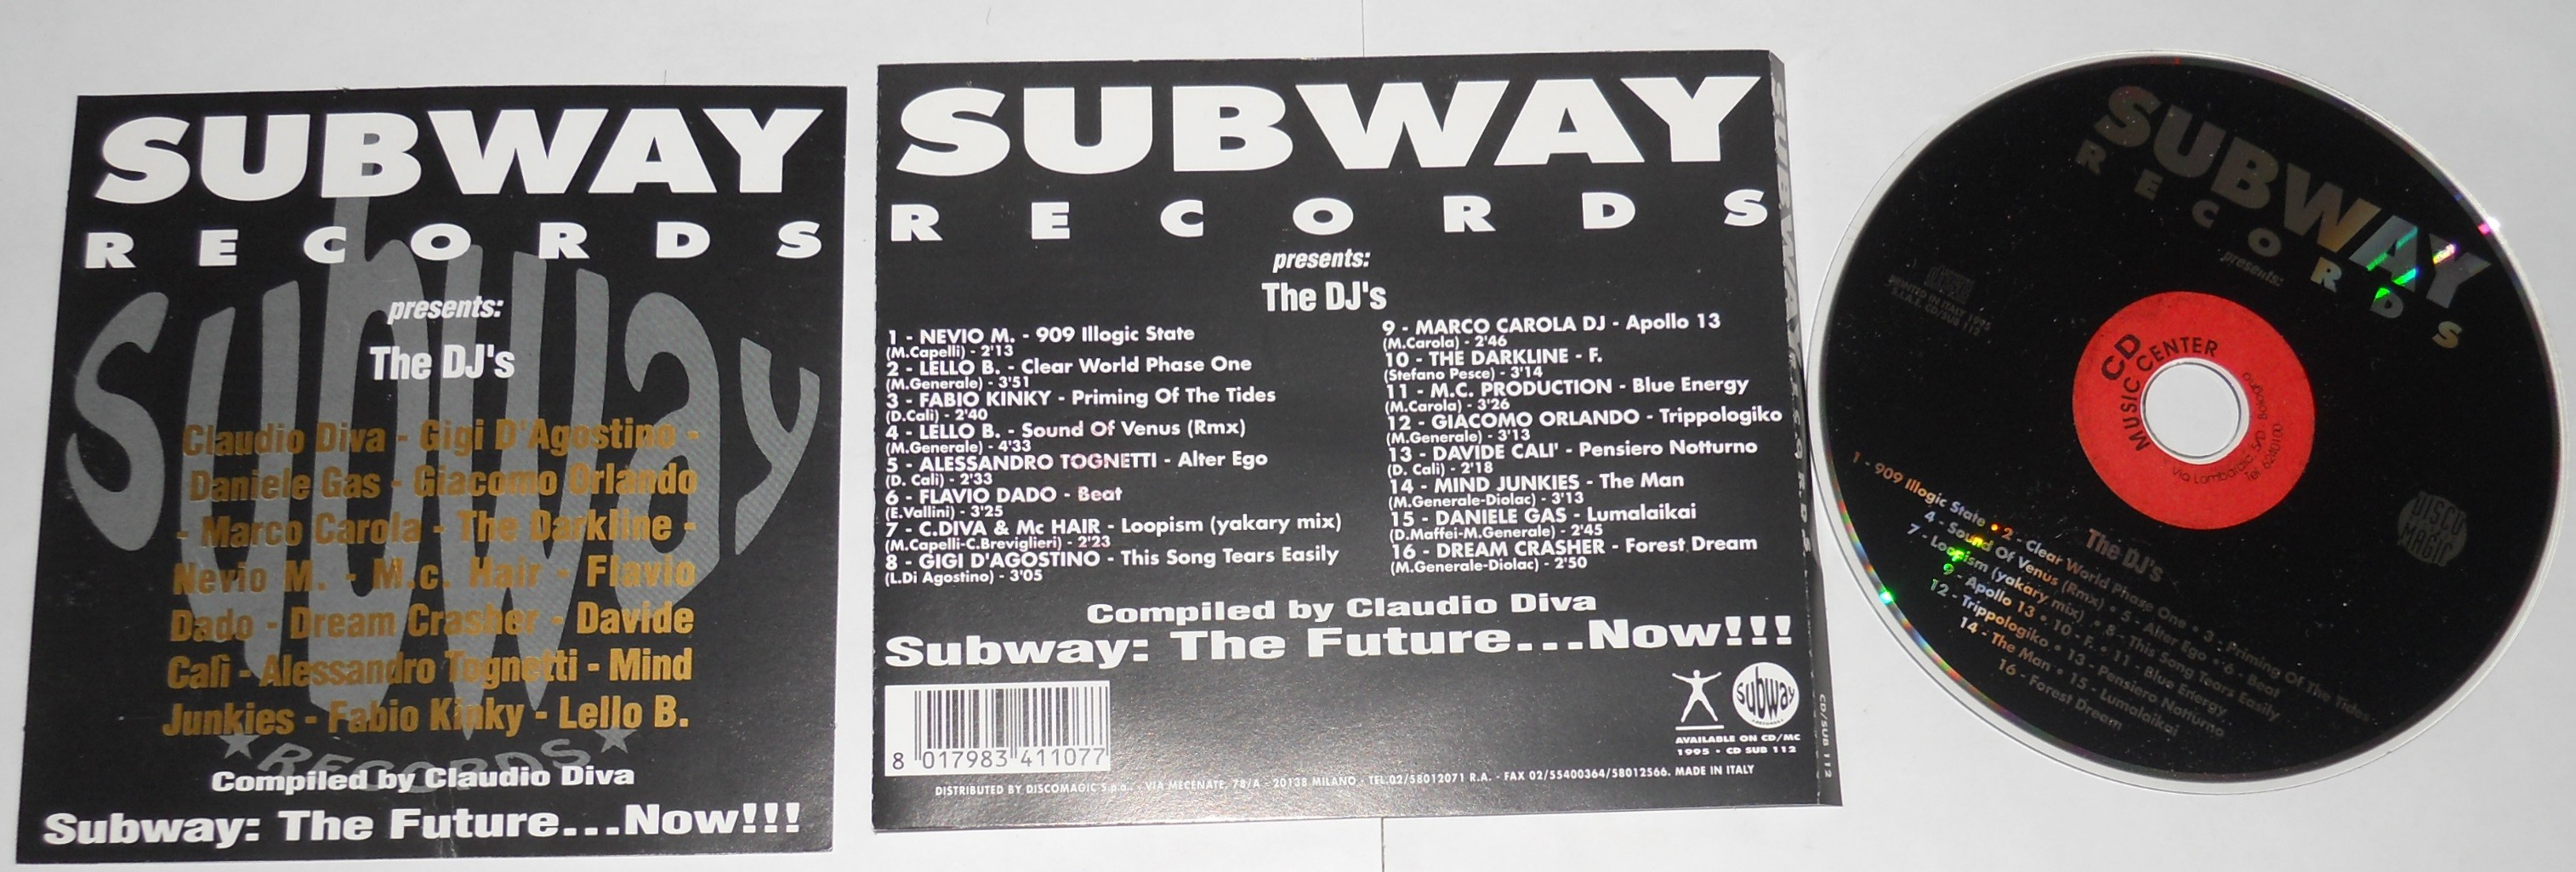 subway records